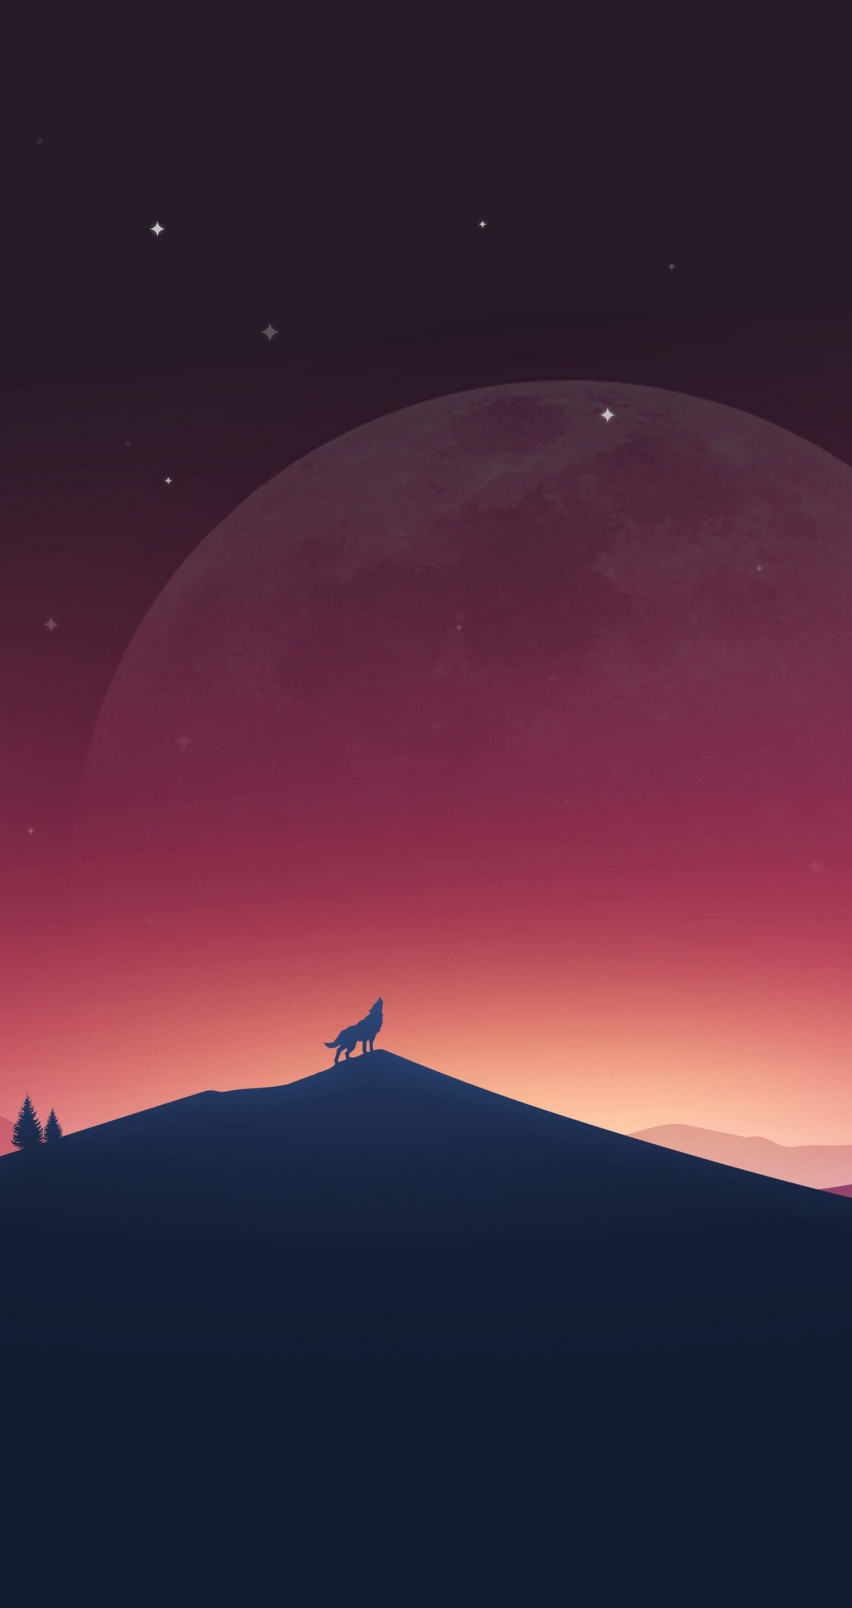 Wolf Howling At The Moon Wallpaper for Apple iPhone 6 / 6s